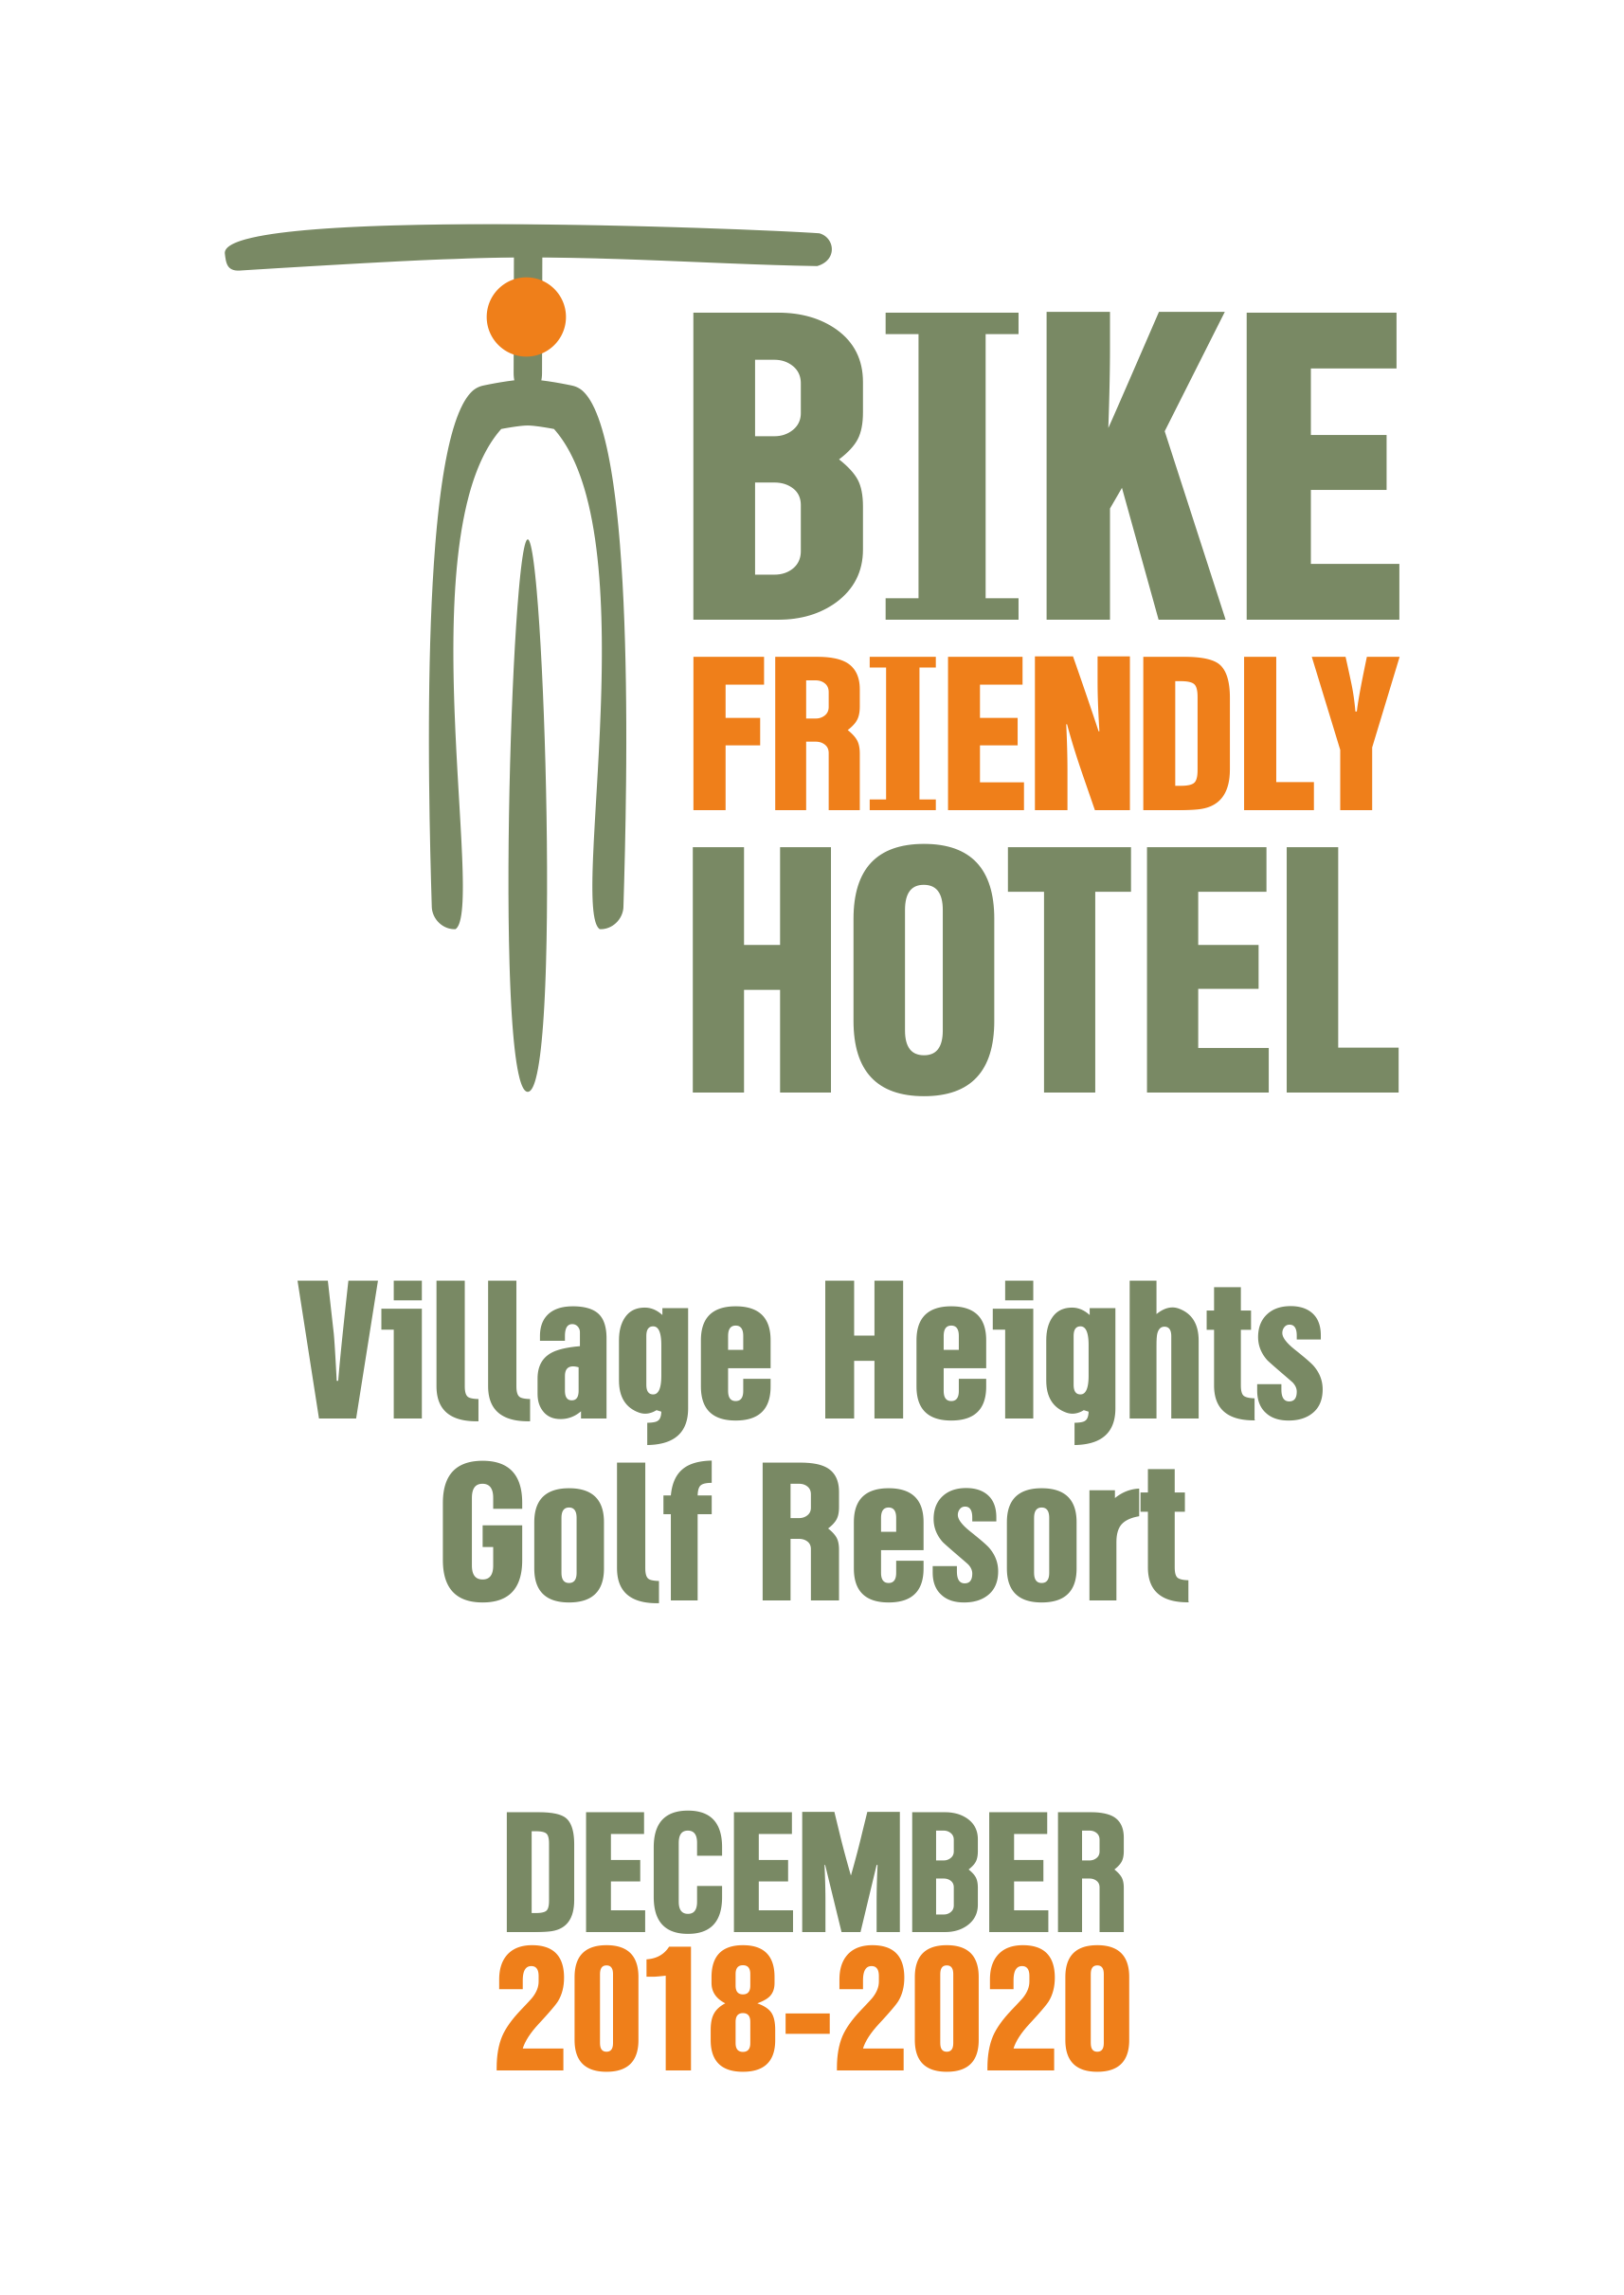 Village Heights Golf Resort Dec2018-2020